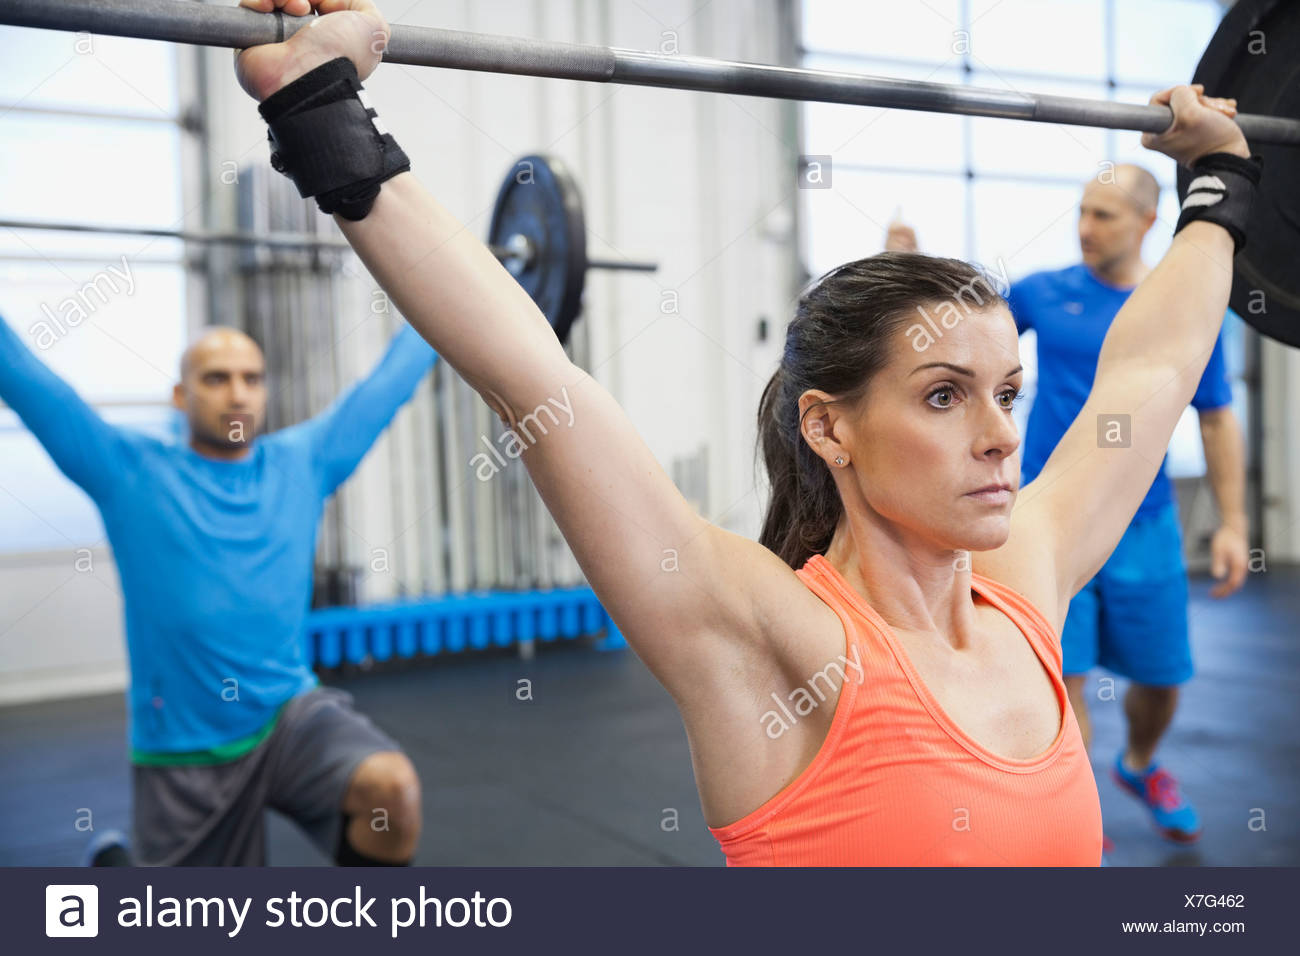 Determined woman doing cross fit in gym - Stock Image